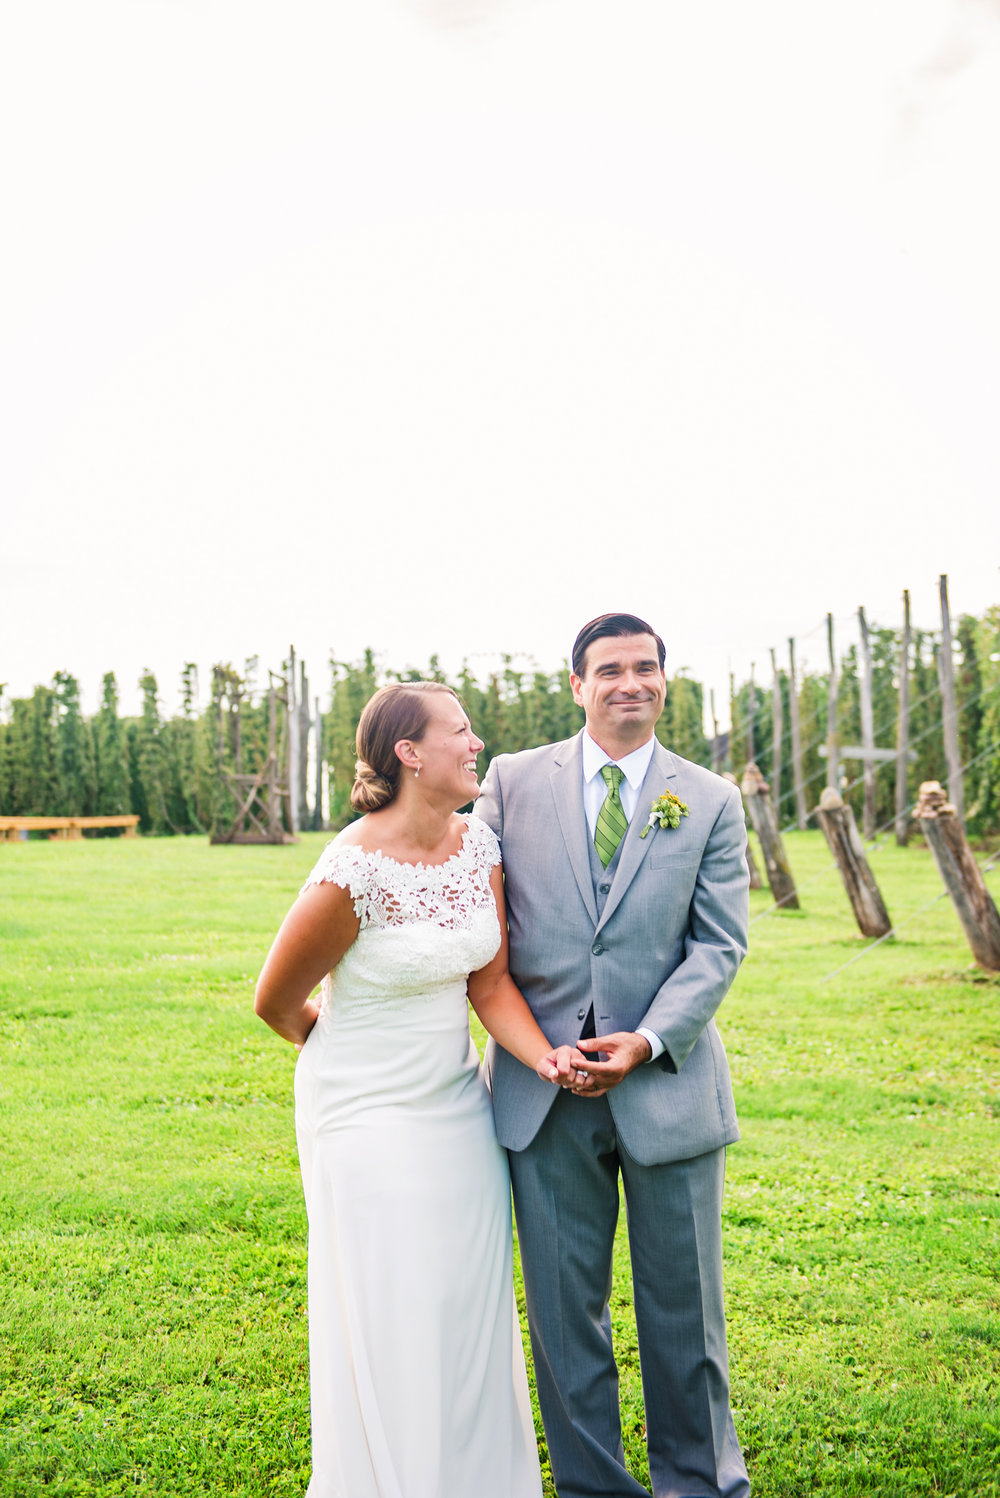 Climbing_Bines_Finger_Lakes_Wedding_JILL_STUDIO_Rochester_NY_Photographer_165759.jpg